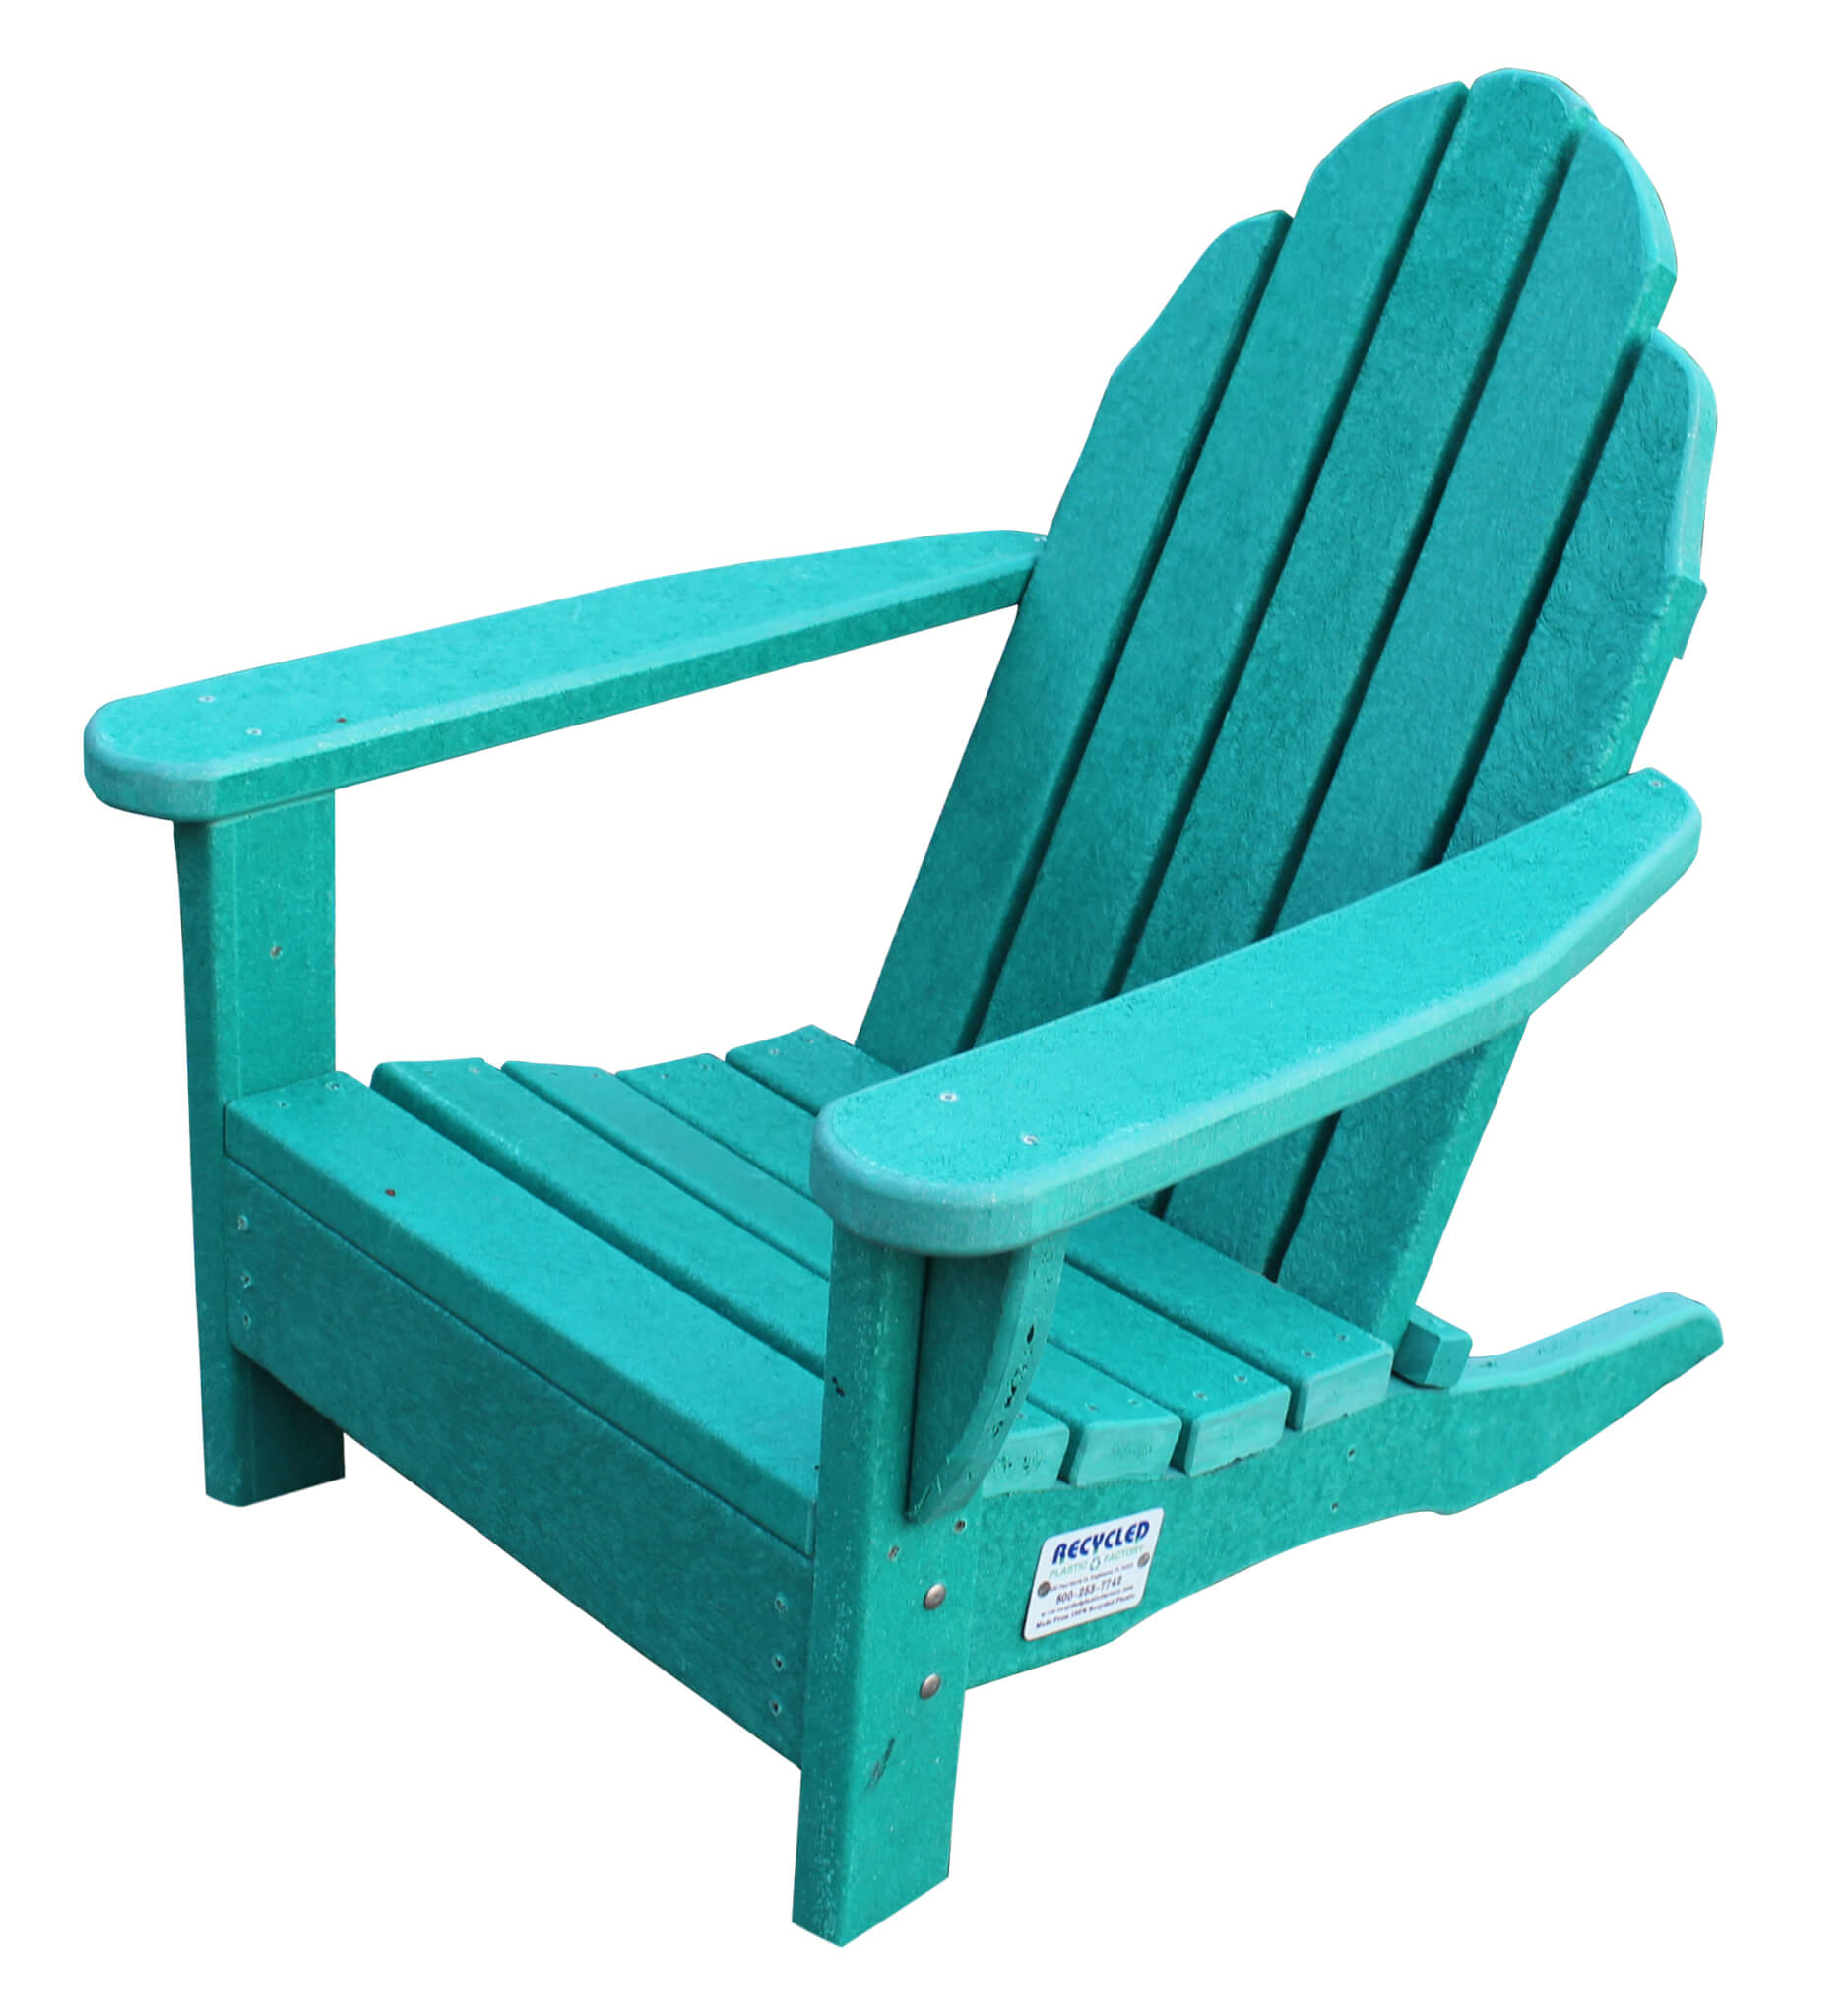 metal adirondack chairs best fitness ball chair outdoor patio furniture  insteading